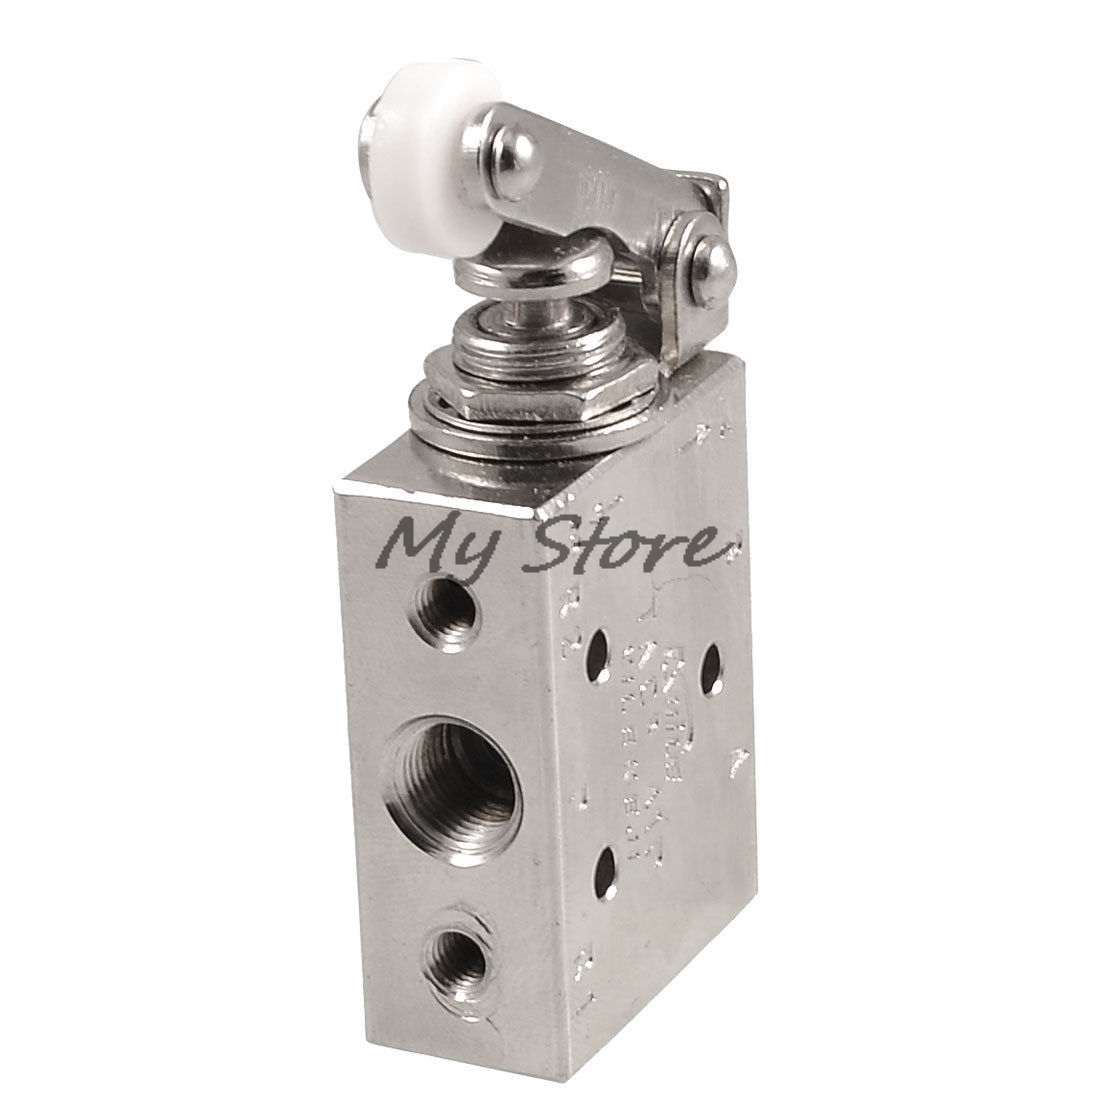 Silver Tone Alloy  2 Position 5 Way Roller Lever Mechanical Valve  Pneumatic valve switch TAC2-41P pneumatic 3 position 4 way spring return lever manual air valve tac2 41p